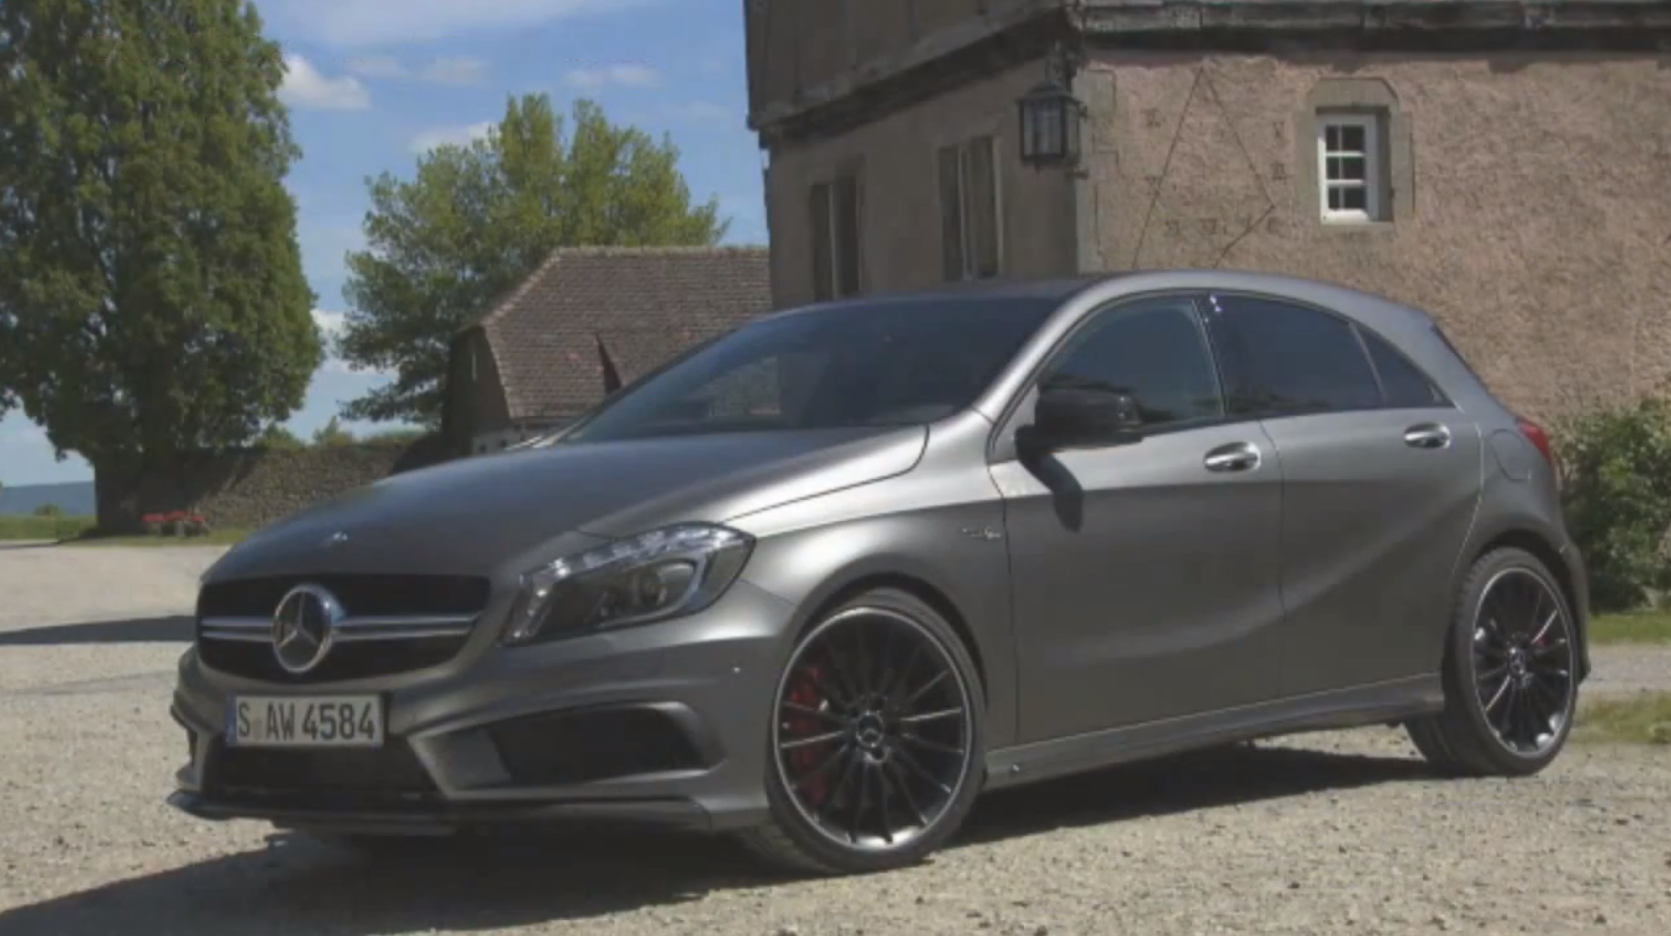 Mercedes benz a 45 amg tested by vadimauto autoevolution for Mercedes benz a 45 amg 4matic